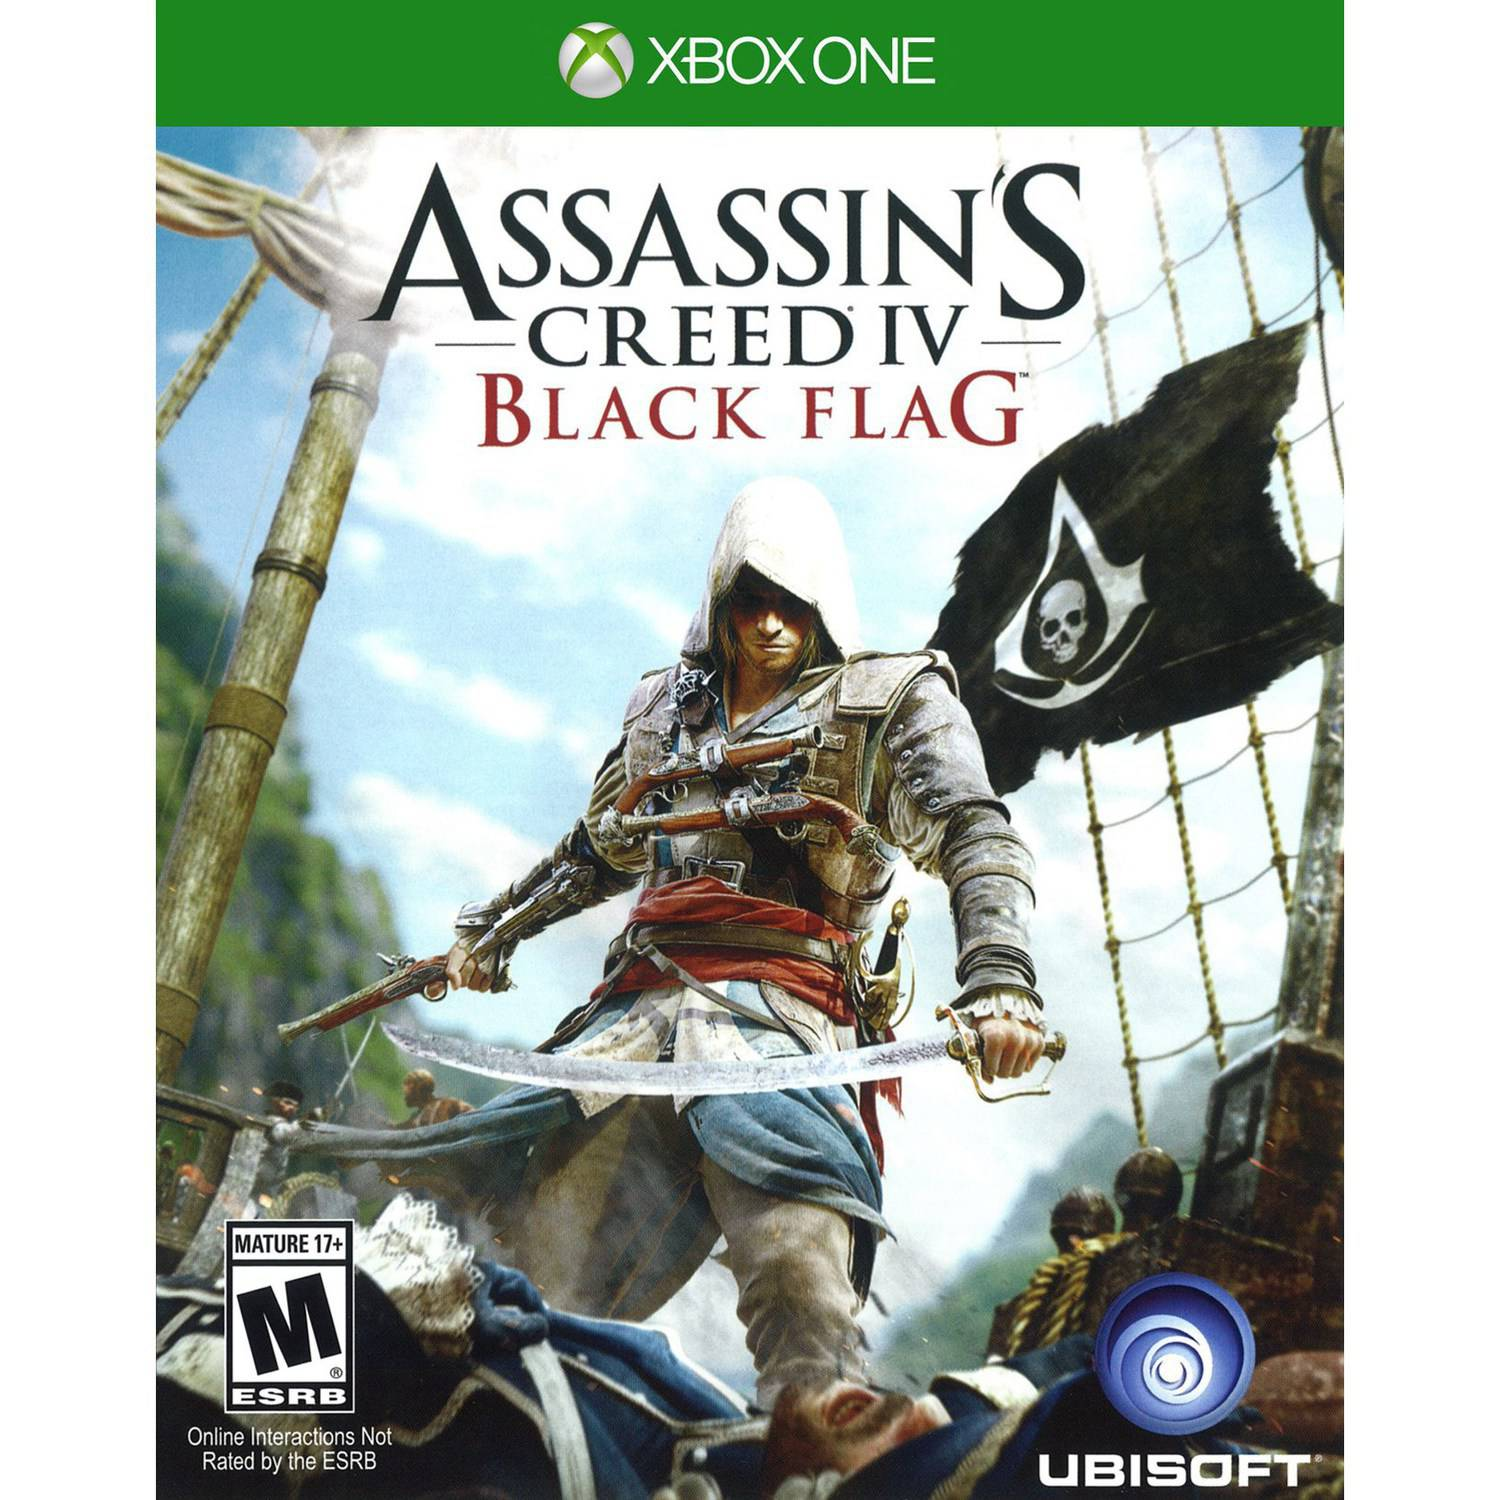 Assassins Creed 4 Black Flag (Xbox One) - Pre-Owned 886162524284